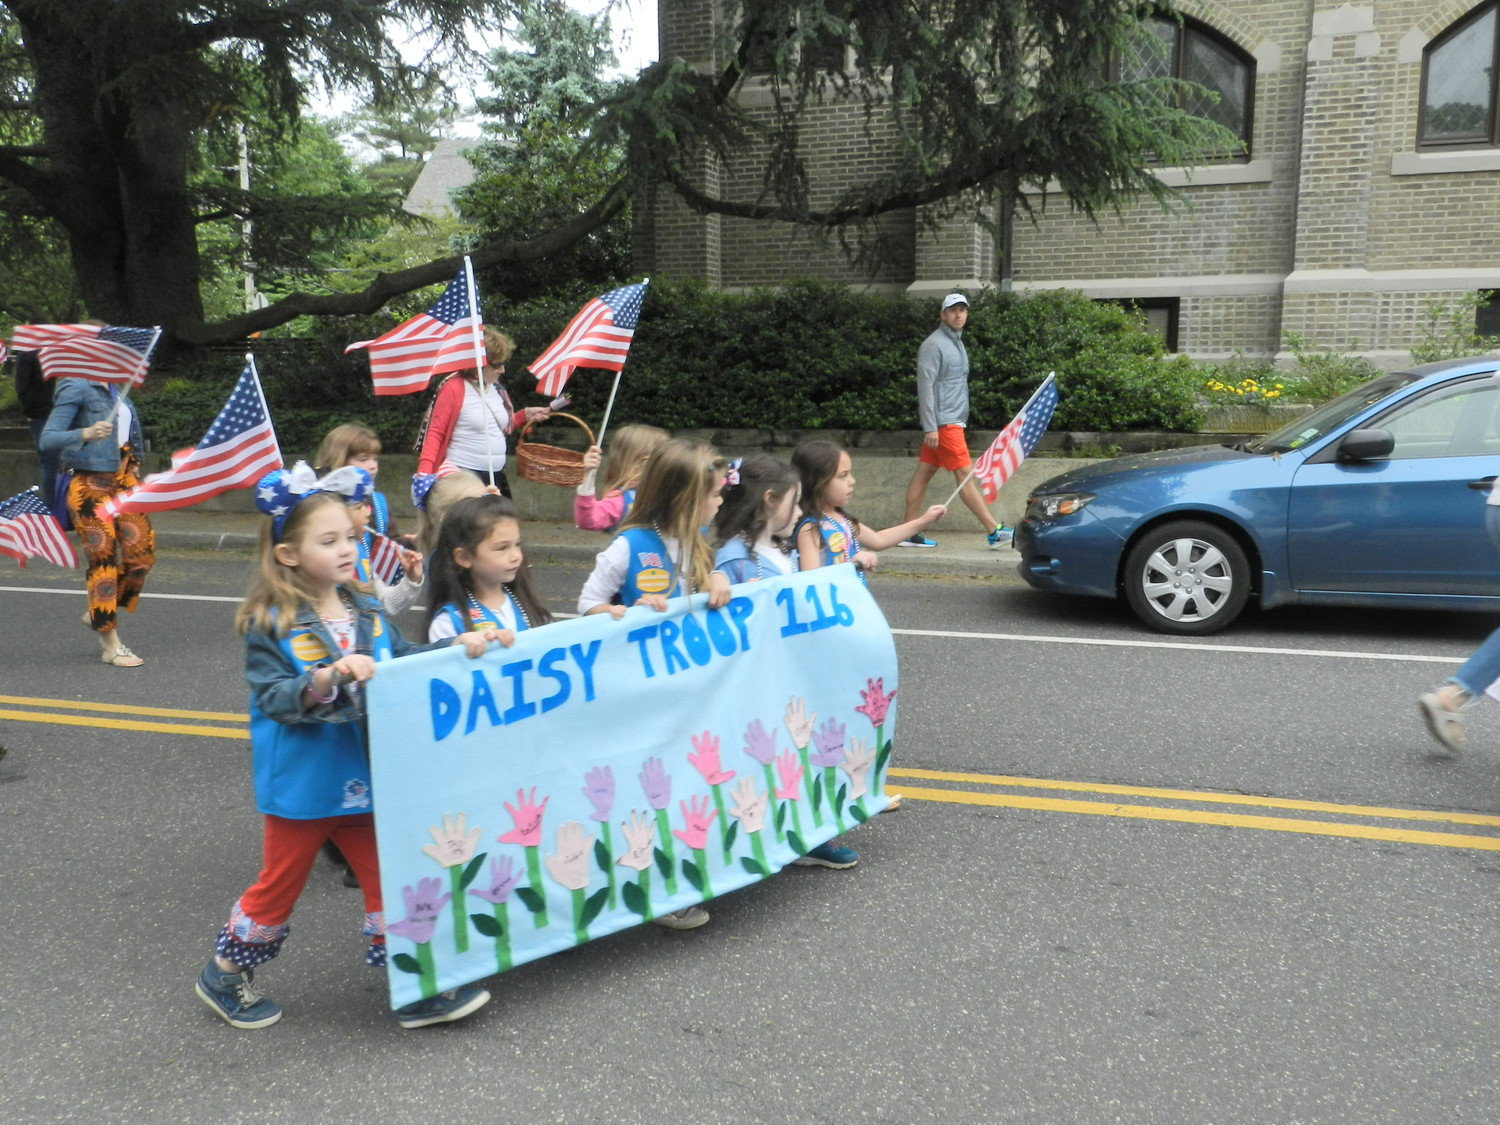 Sea Cliff Daisy troop 116 waved a frenzy of flags while walking in the parade.